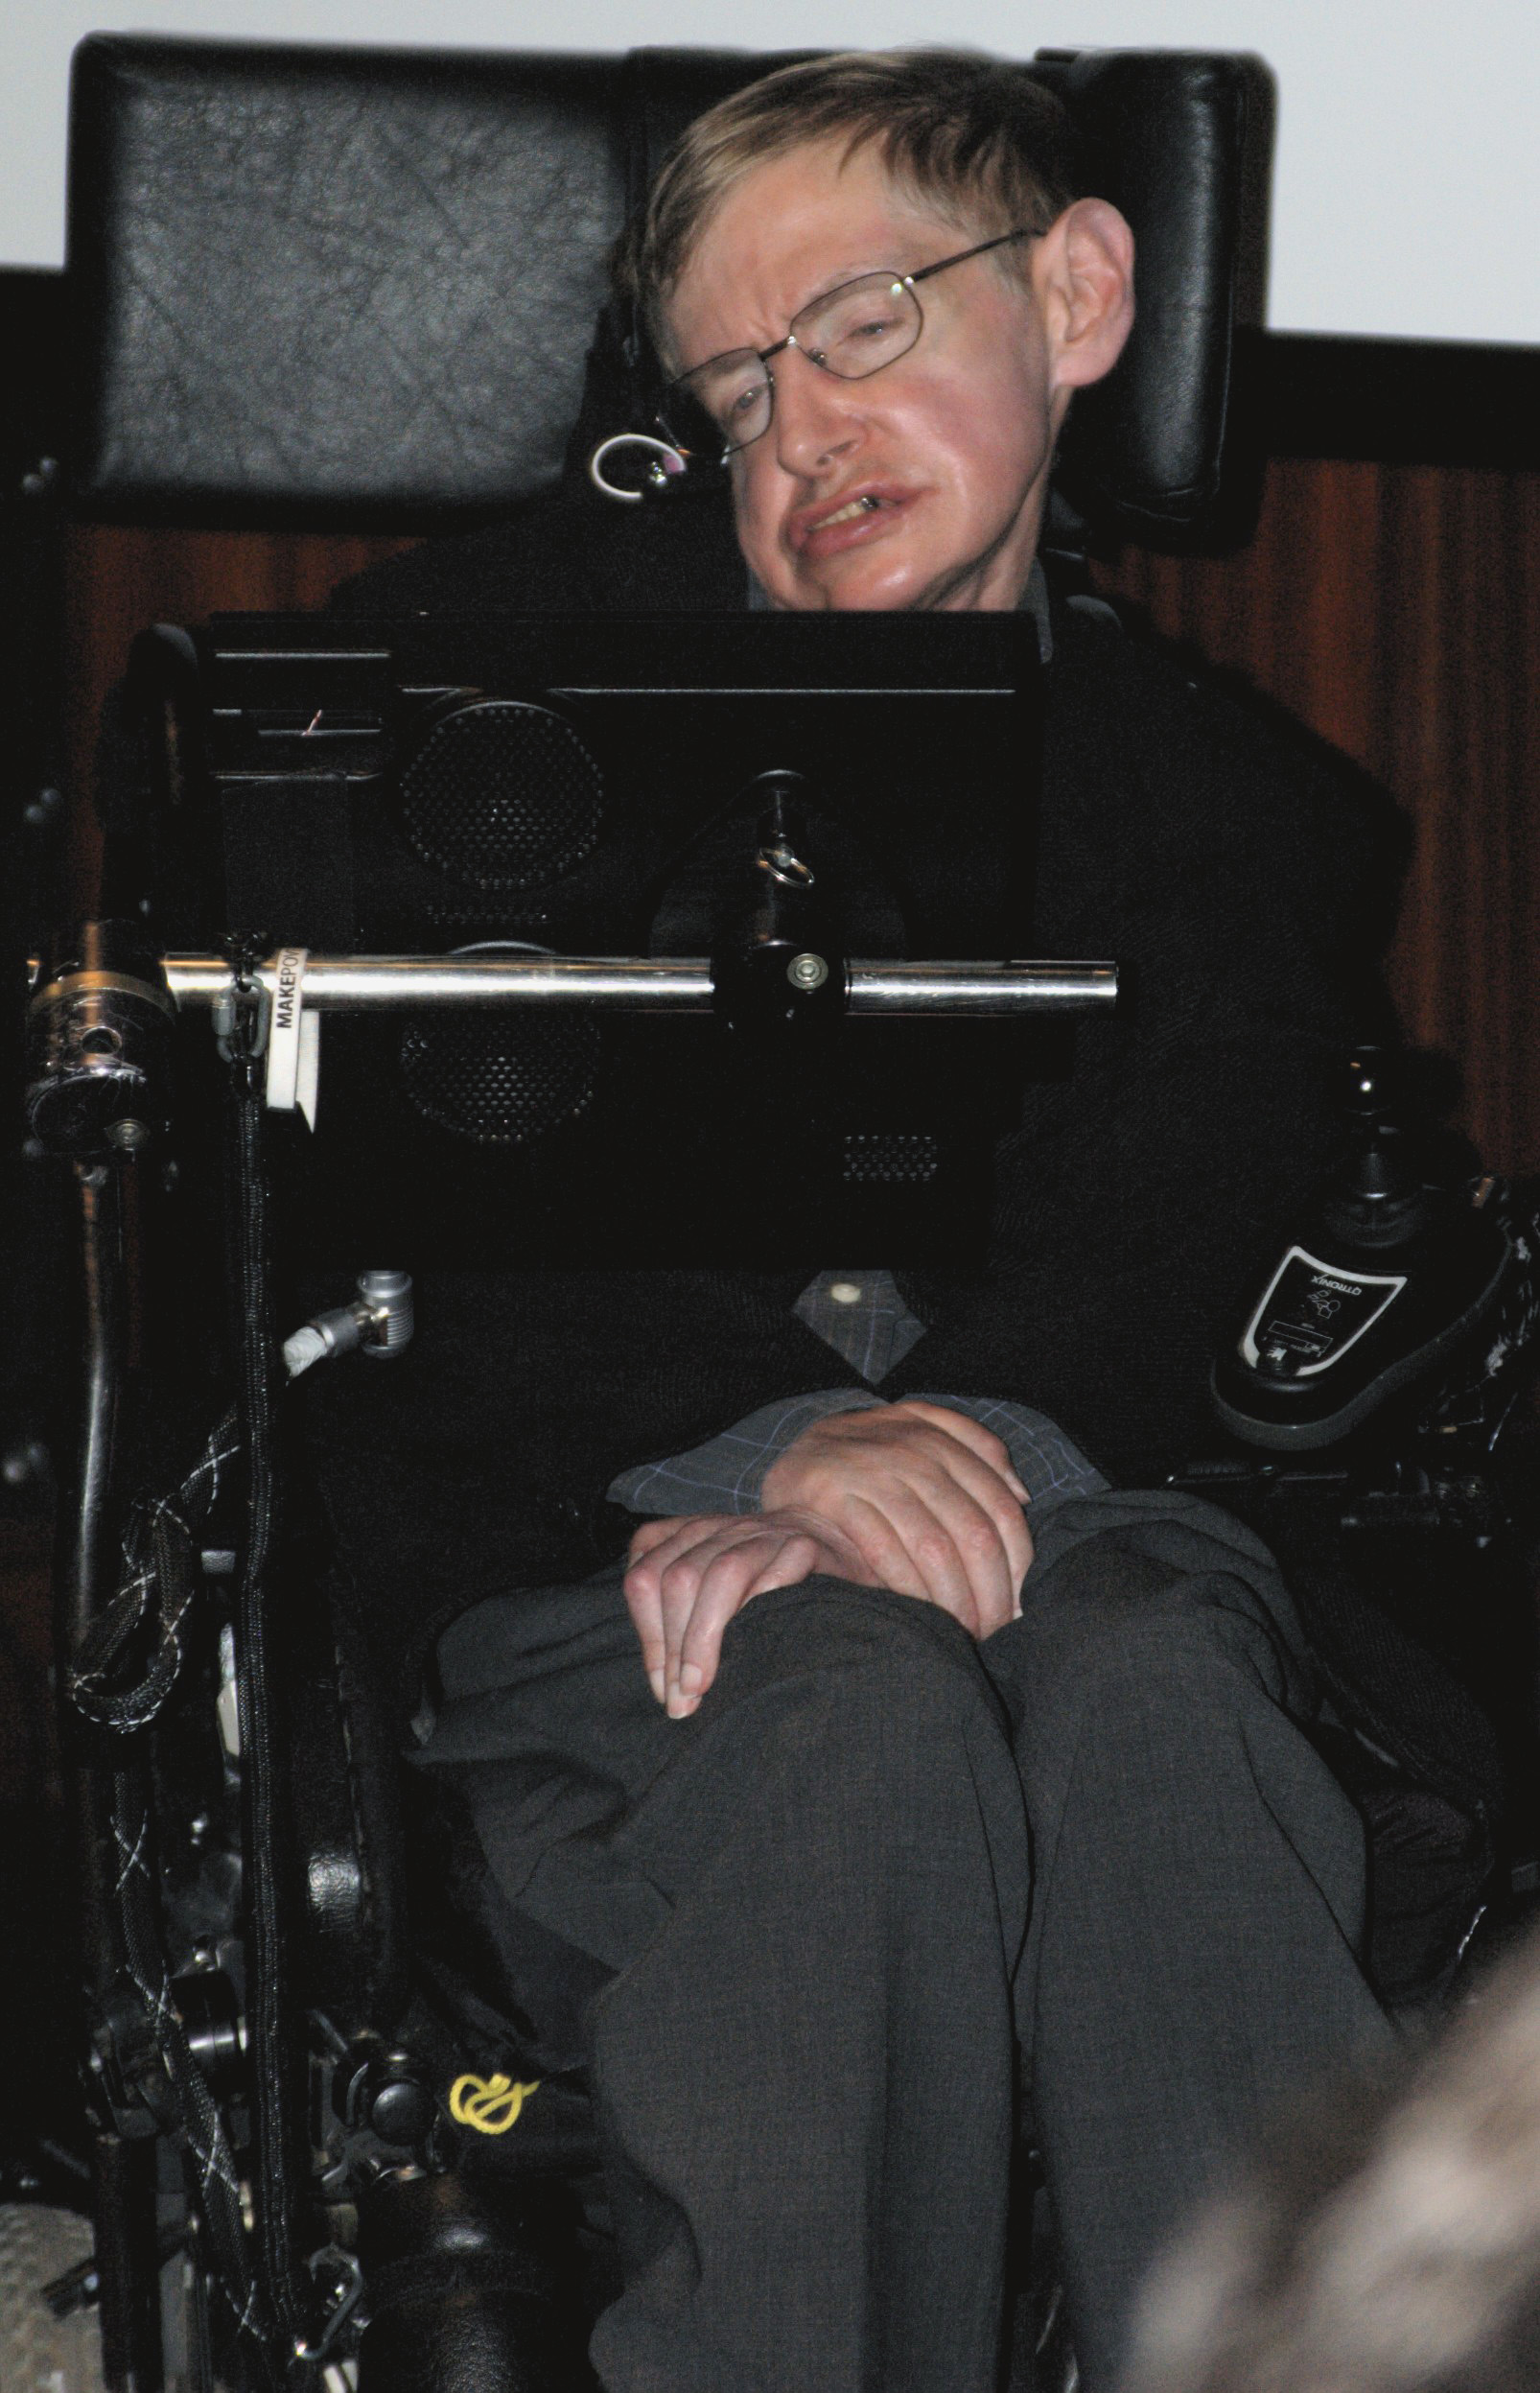 File:STEPHEN HAWKING 050506.jpg - Wikipedia, the free encyclopedia